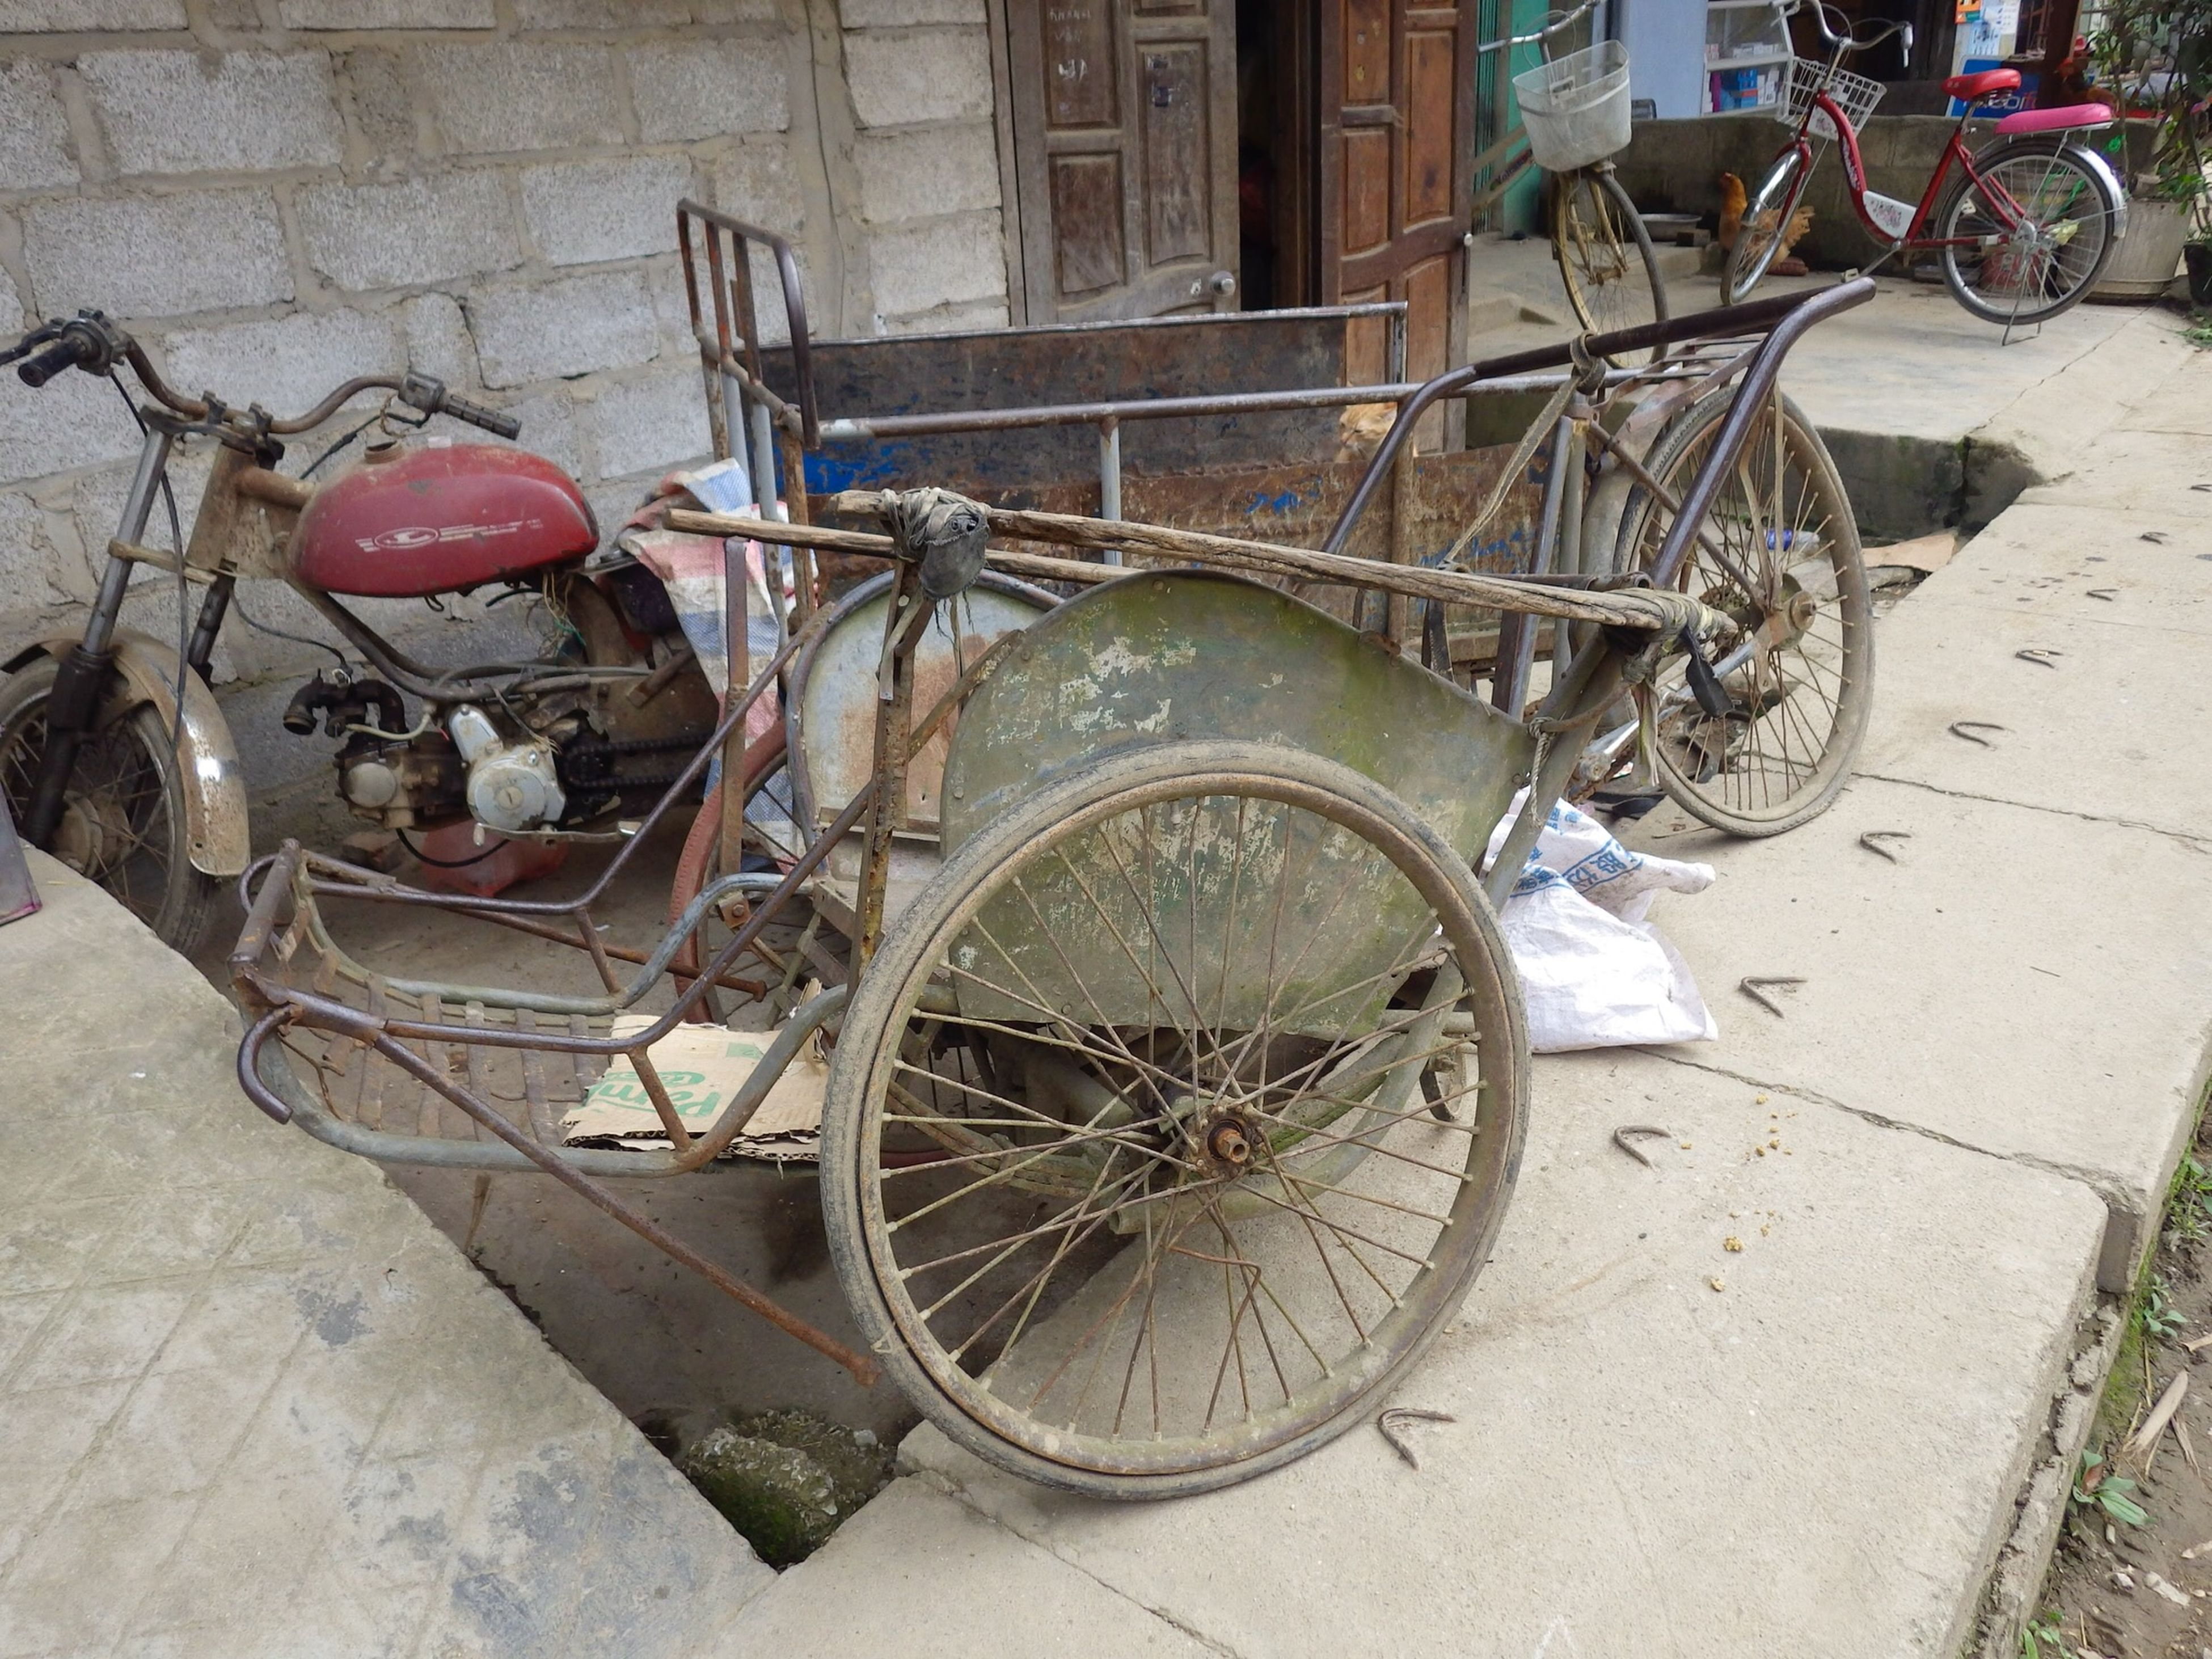 transportation, bicycle, mode of transport, stationary, land vehicle, parking, outdoors, no people, day, close-up